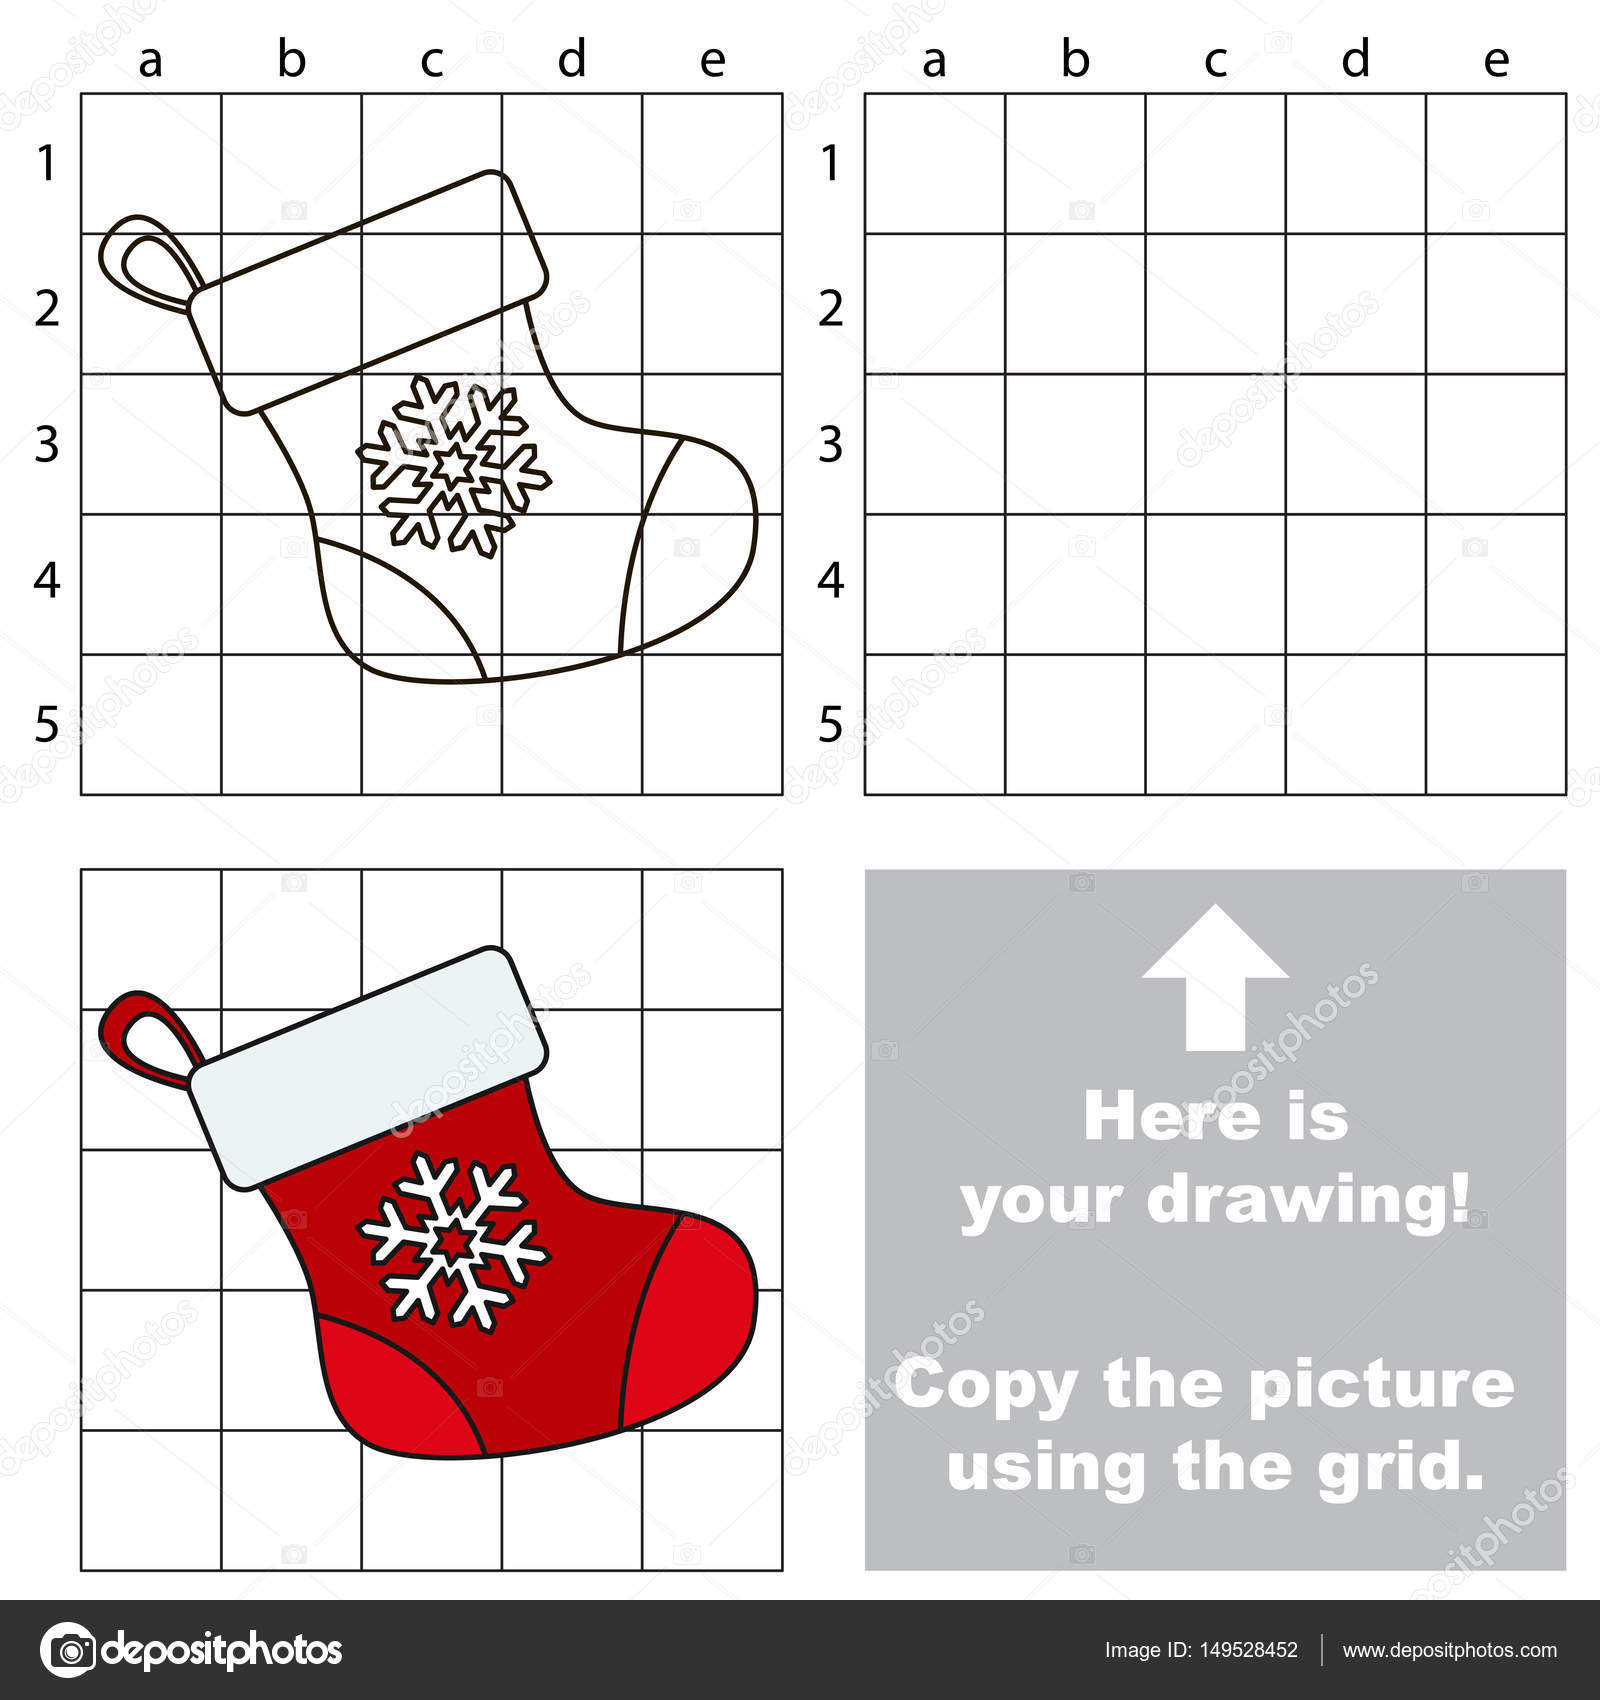 Christmas Stocking Drawing Easy.Copy The Image Using Grid The Simple Educational Kid Game